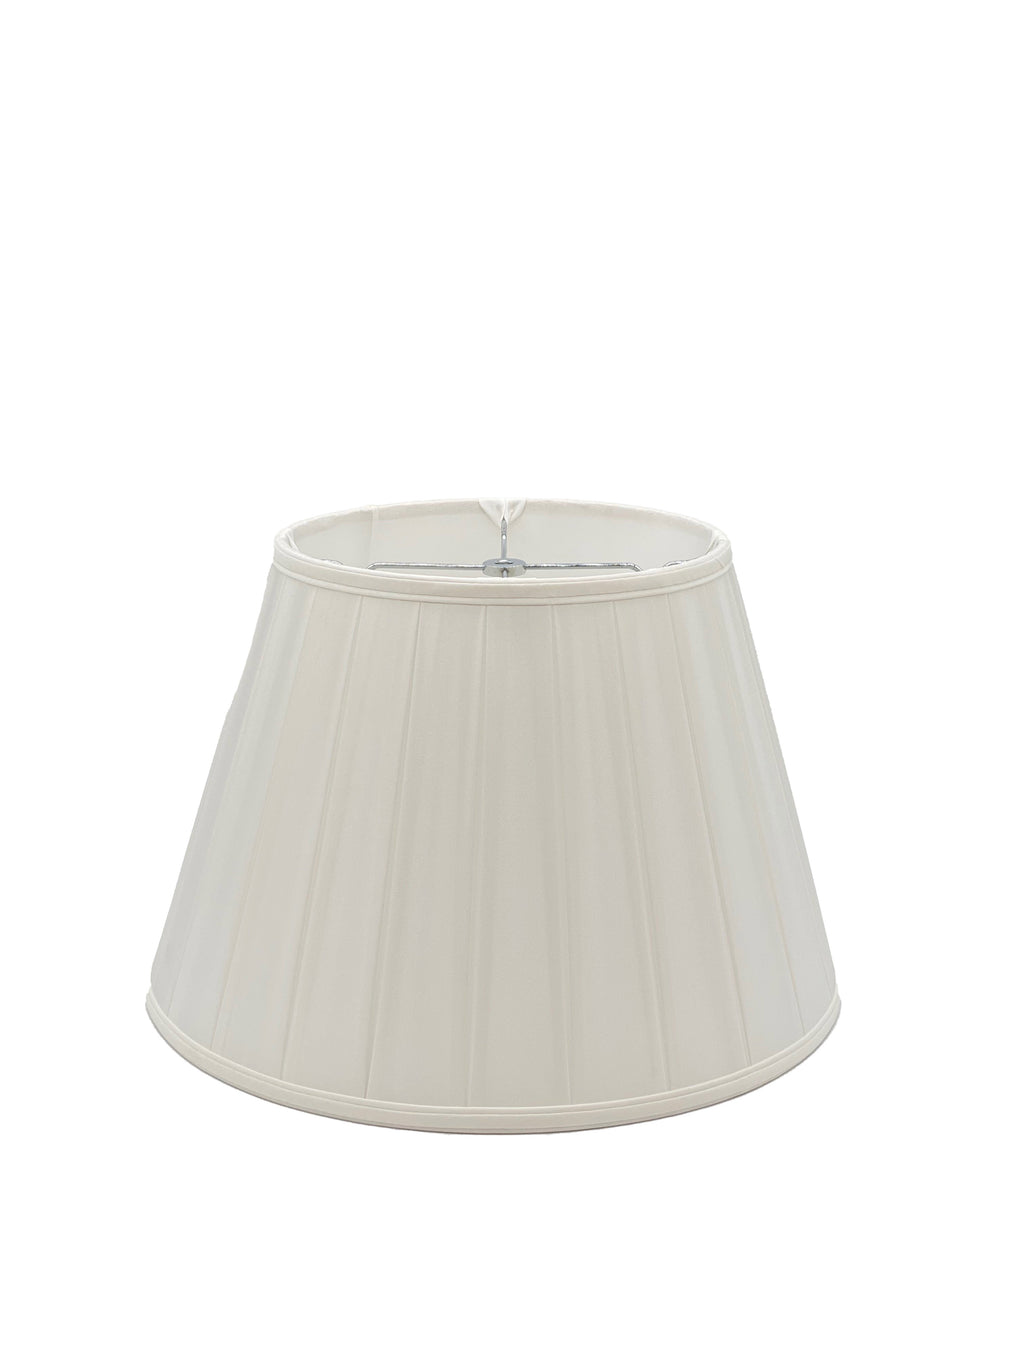 Silk English Empire Wide Box Pleat - Bone - Lampshade